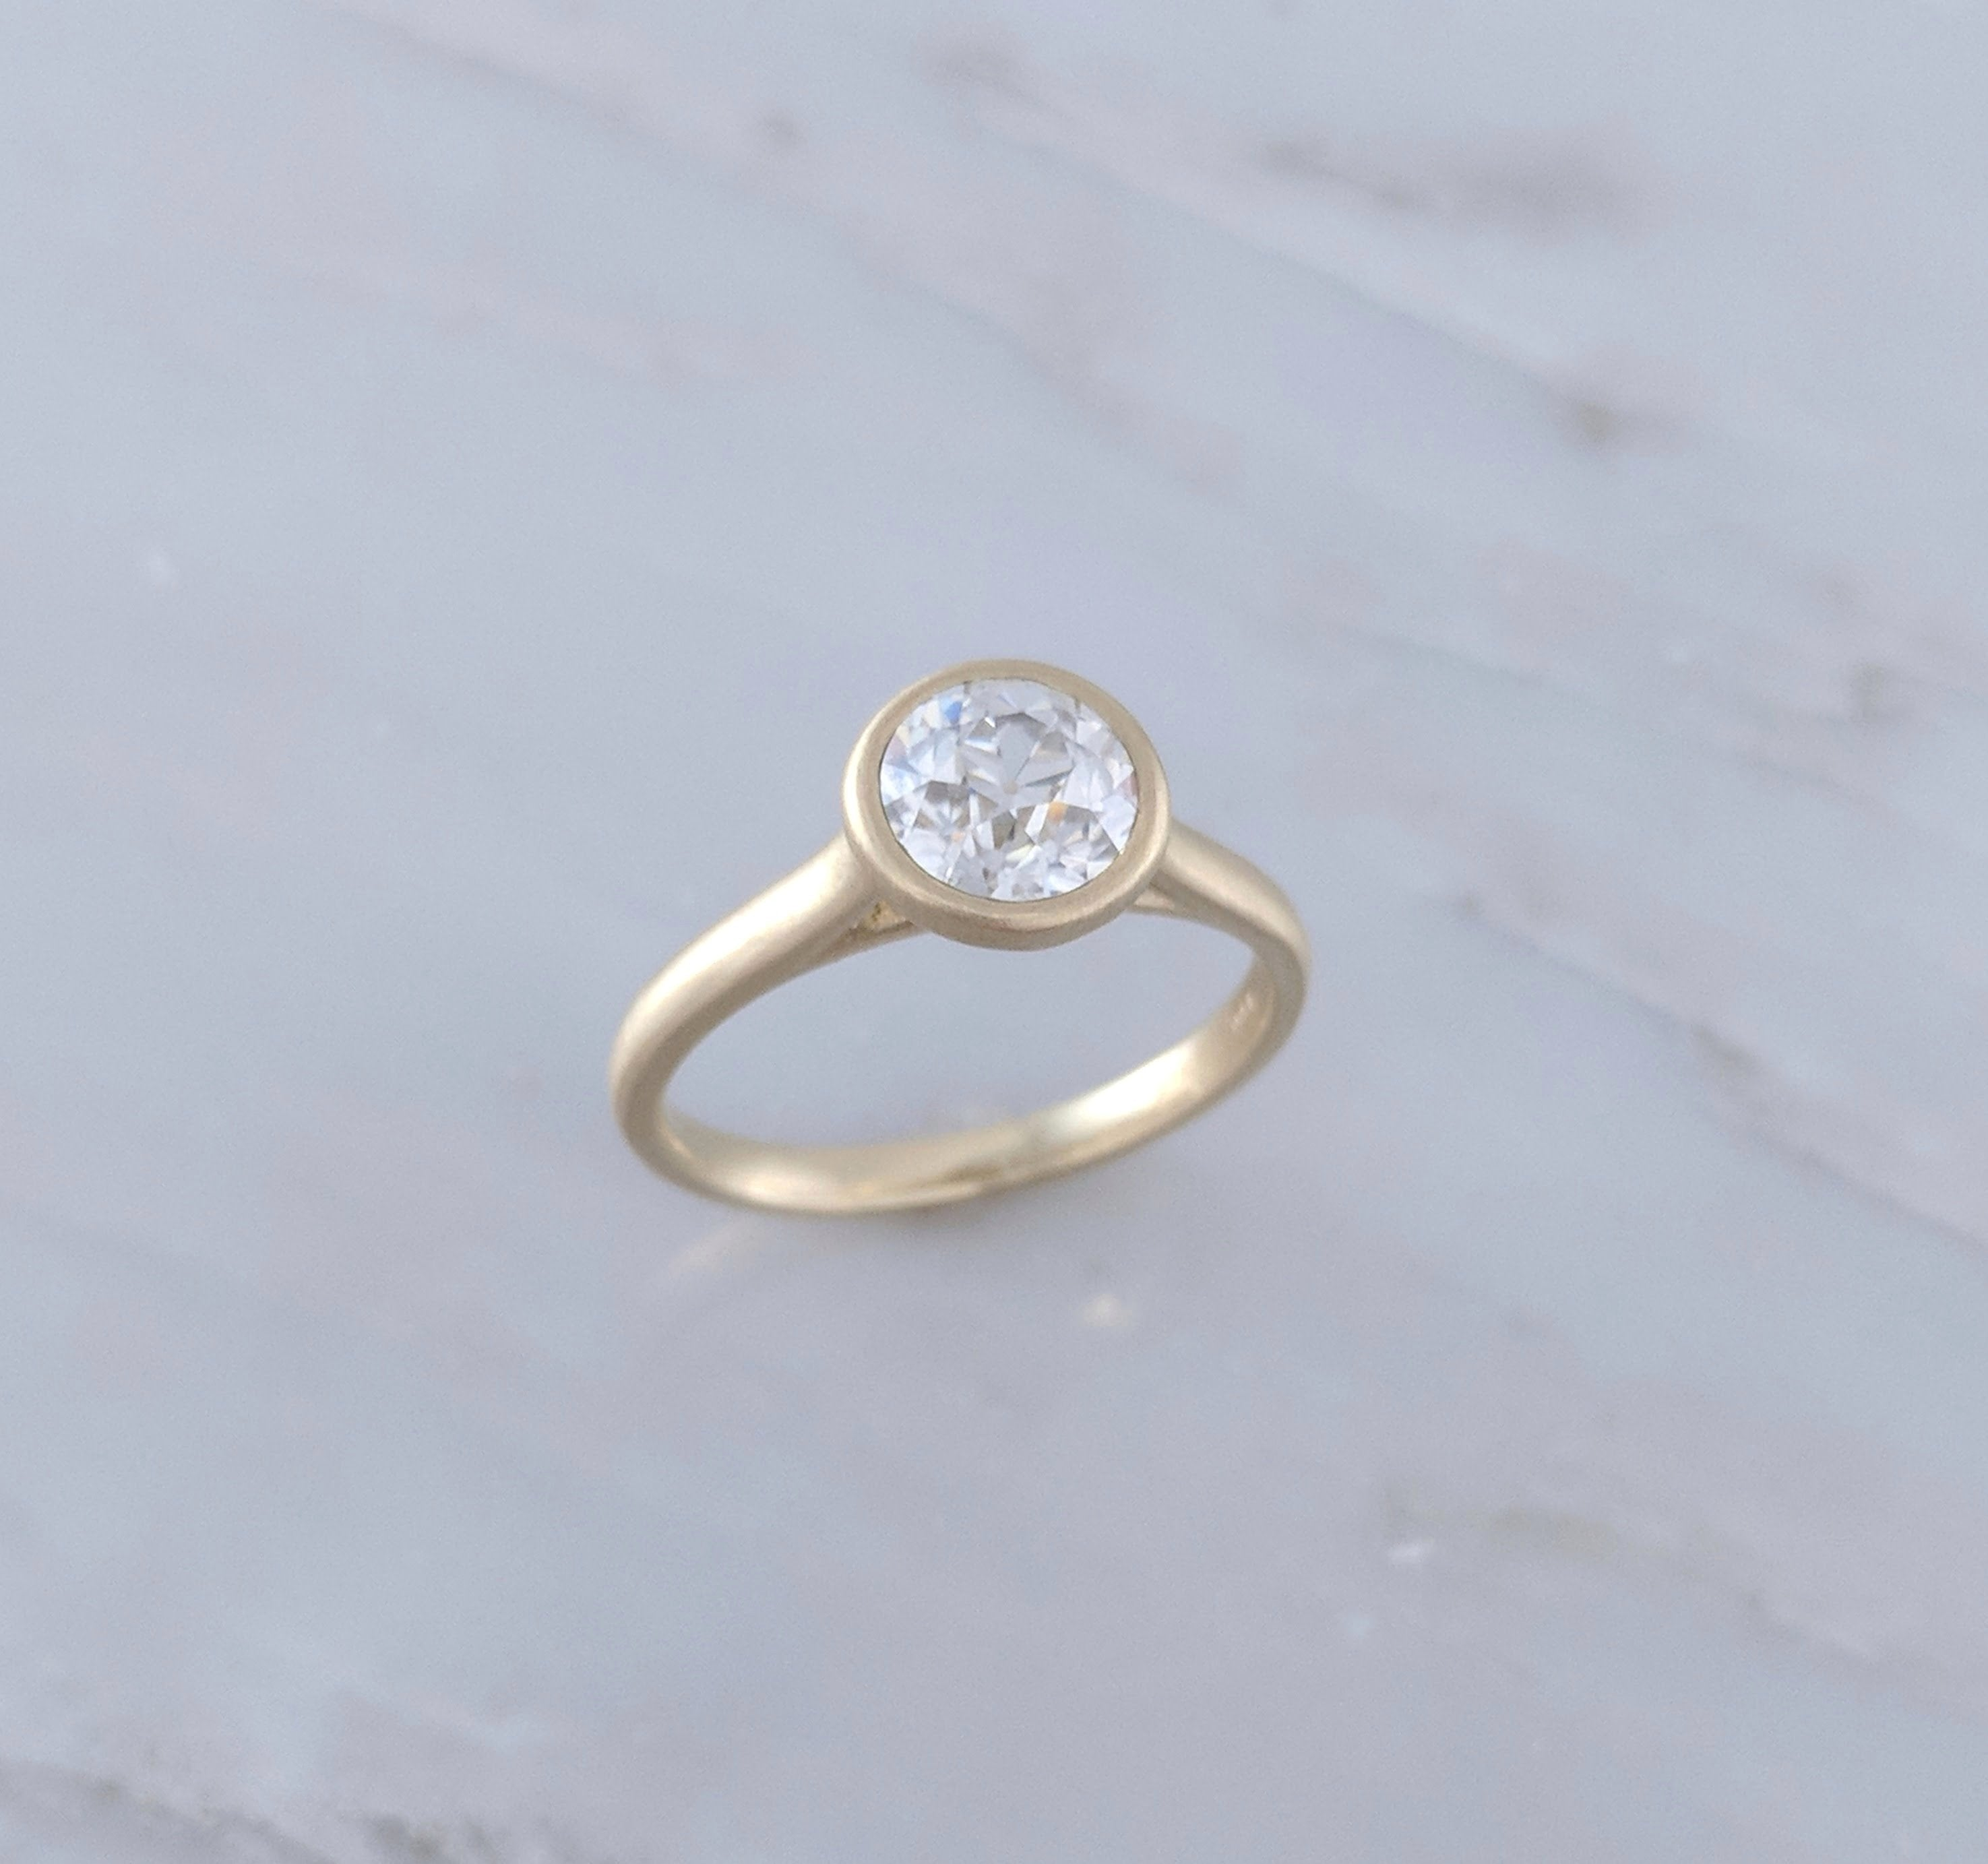 1 Ct Moissanite Ring, Moissanite Ring Old European Cut